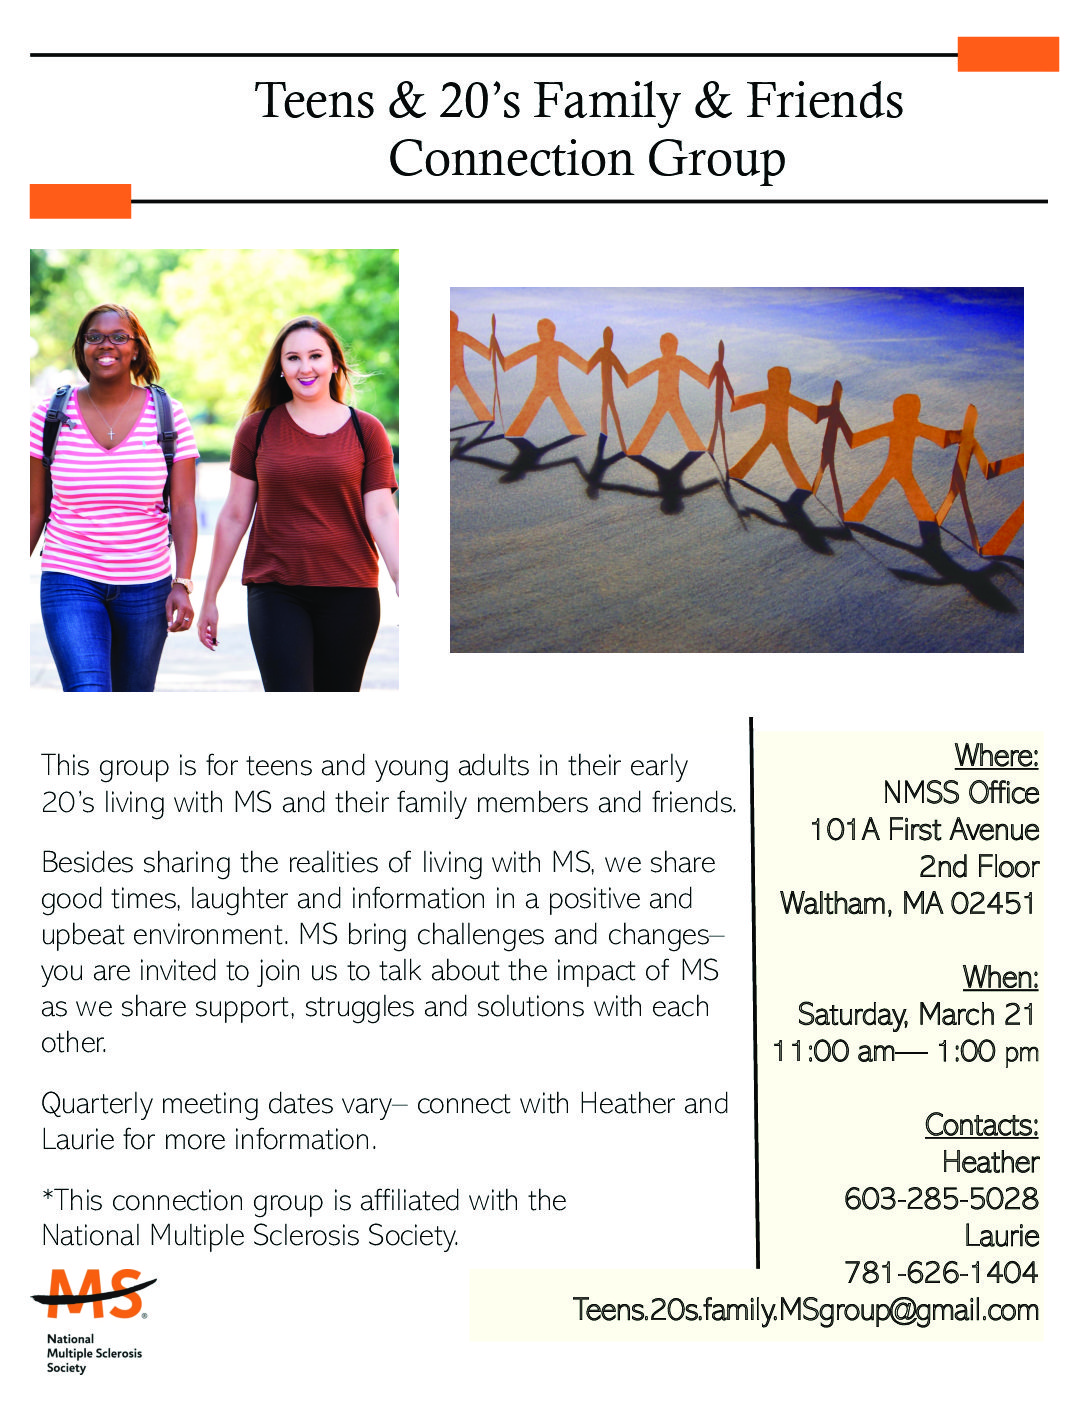 Teens20sFamily_flyer_FY20MarchMtg